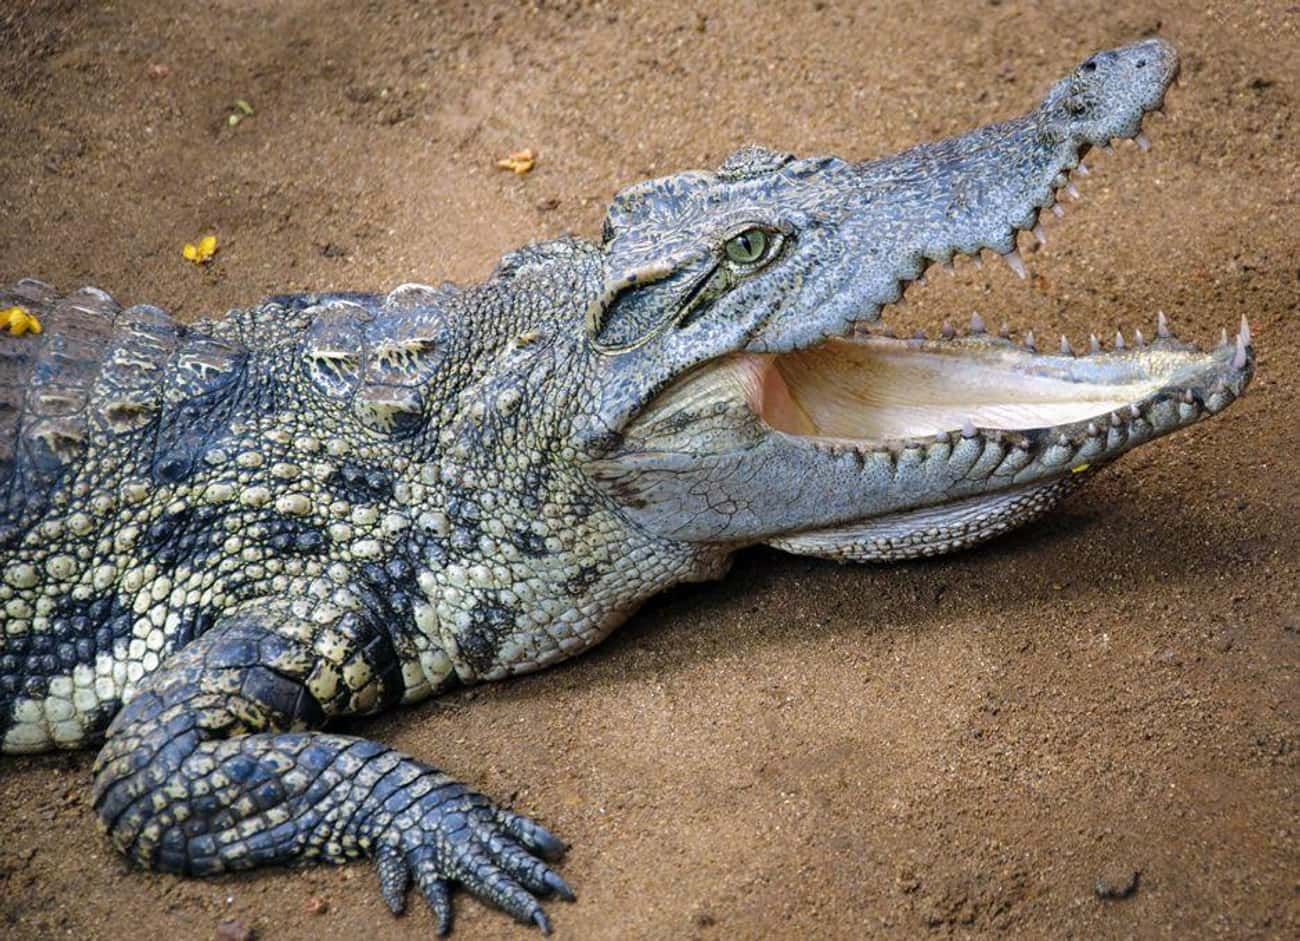 First, Yes, There Are Many Similarities Between Reptiles And Dinosaurs